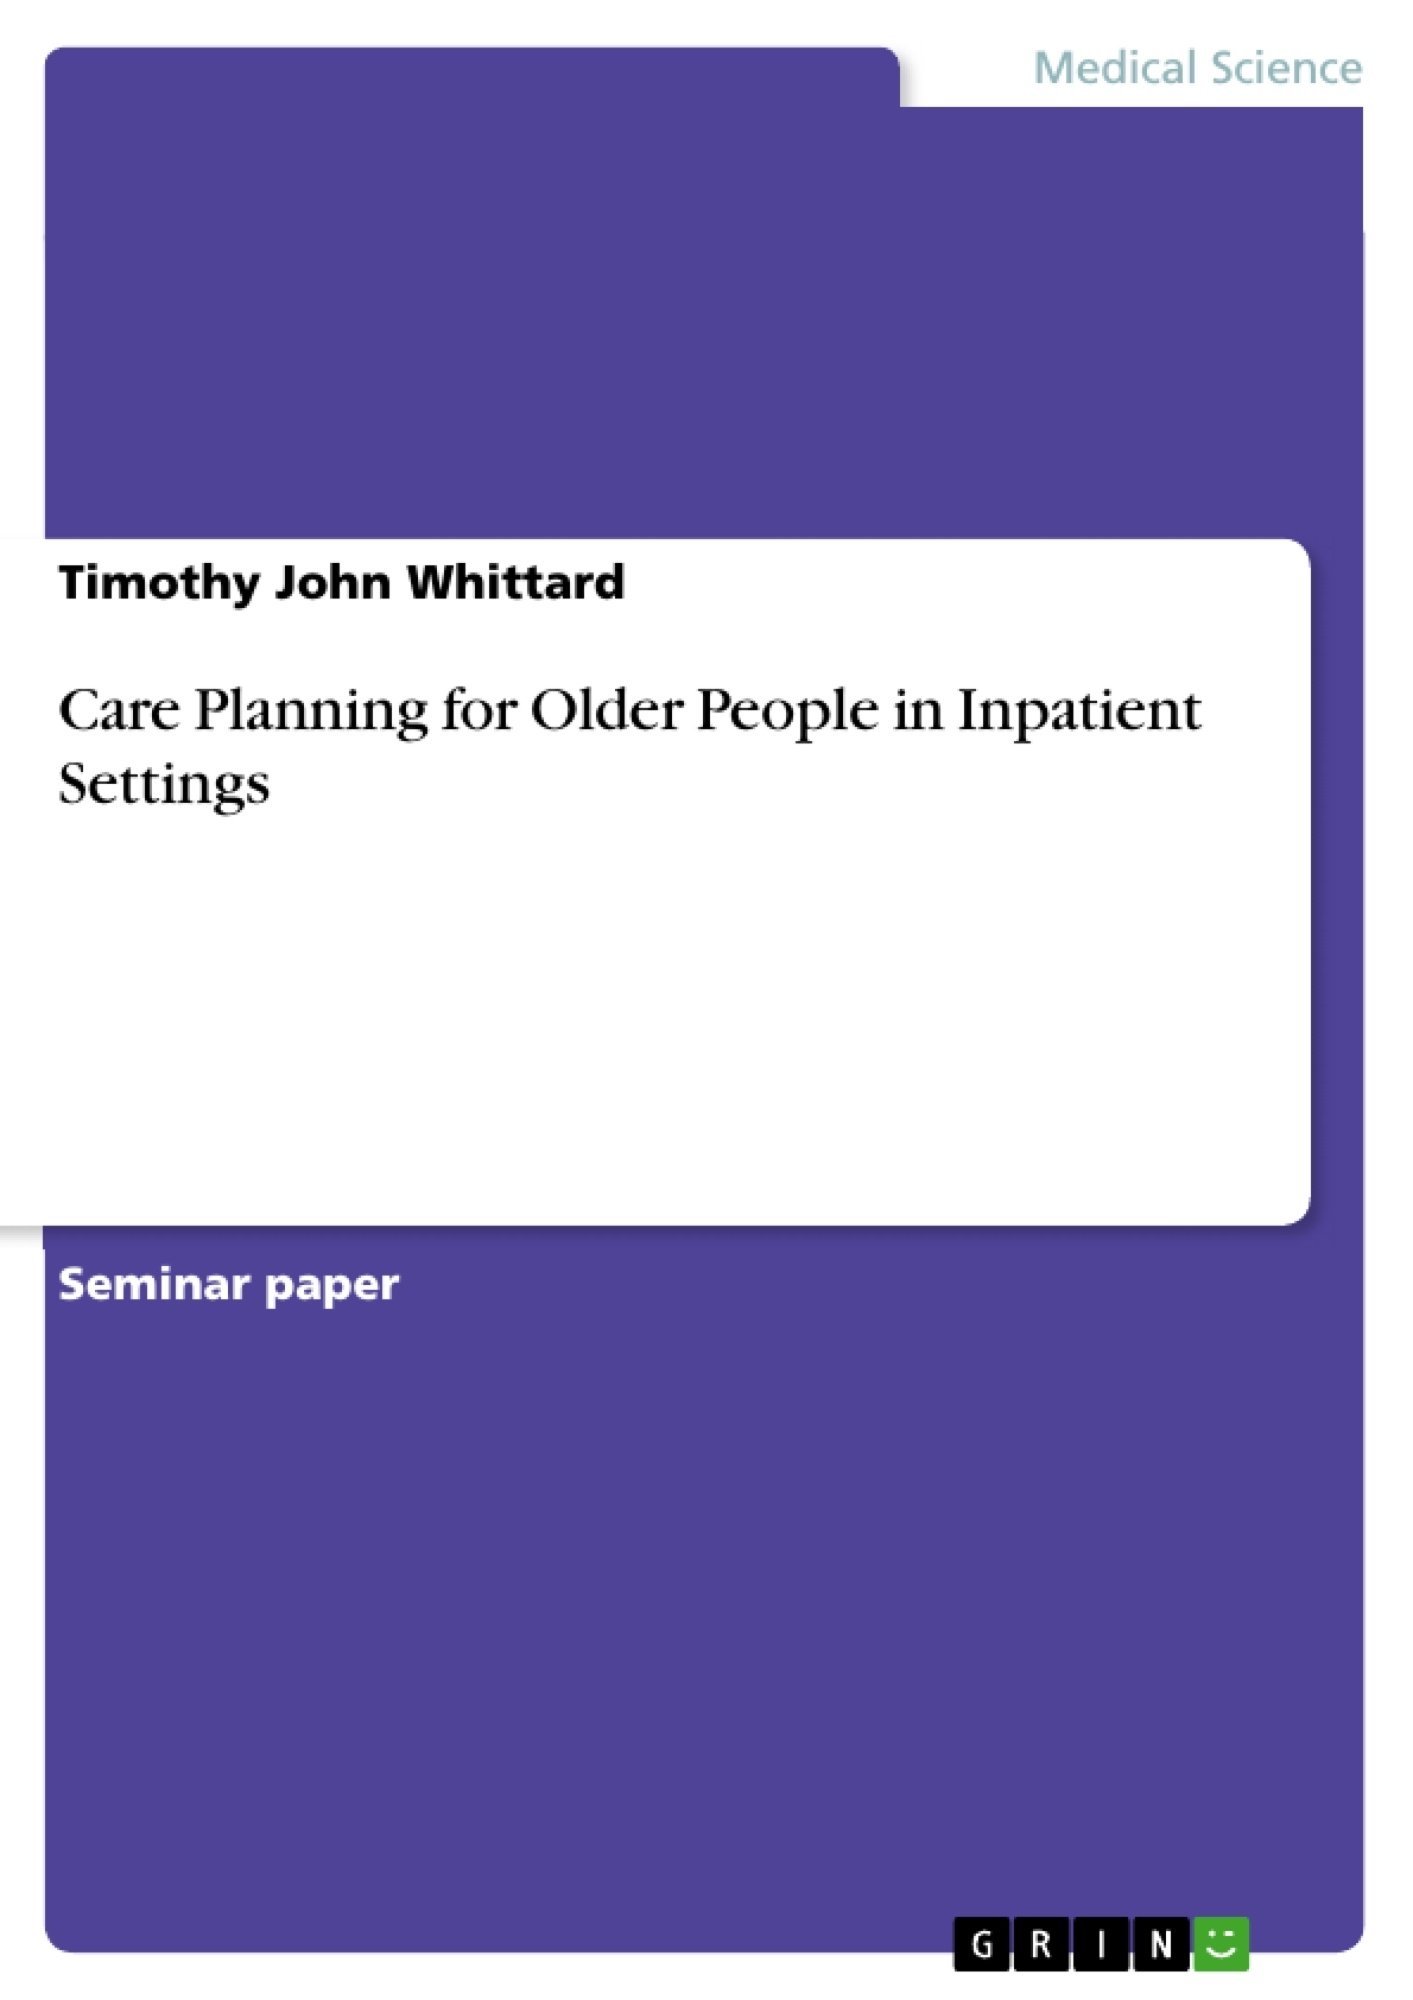 Title: Care Planning for Older People in Inpatient Settings